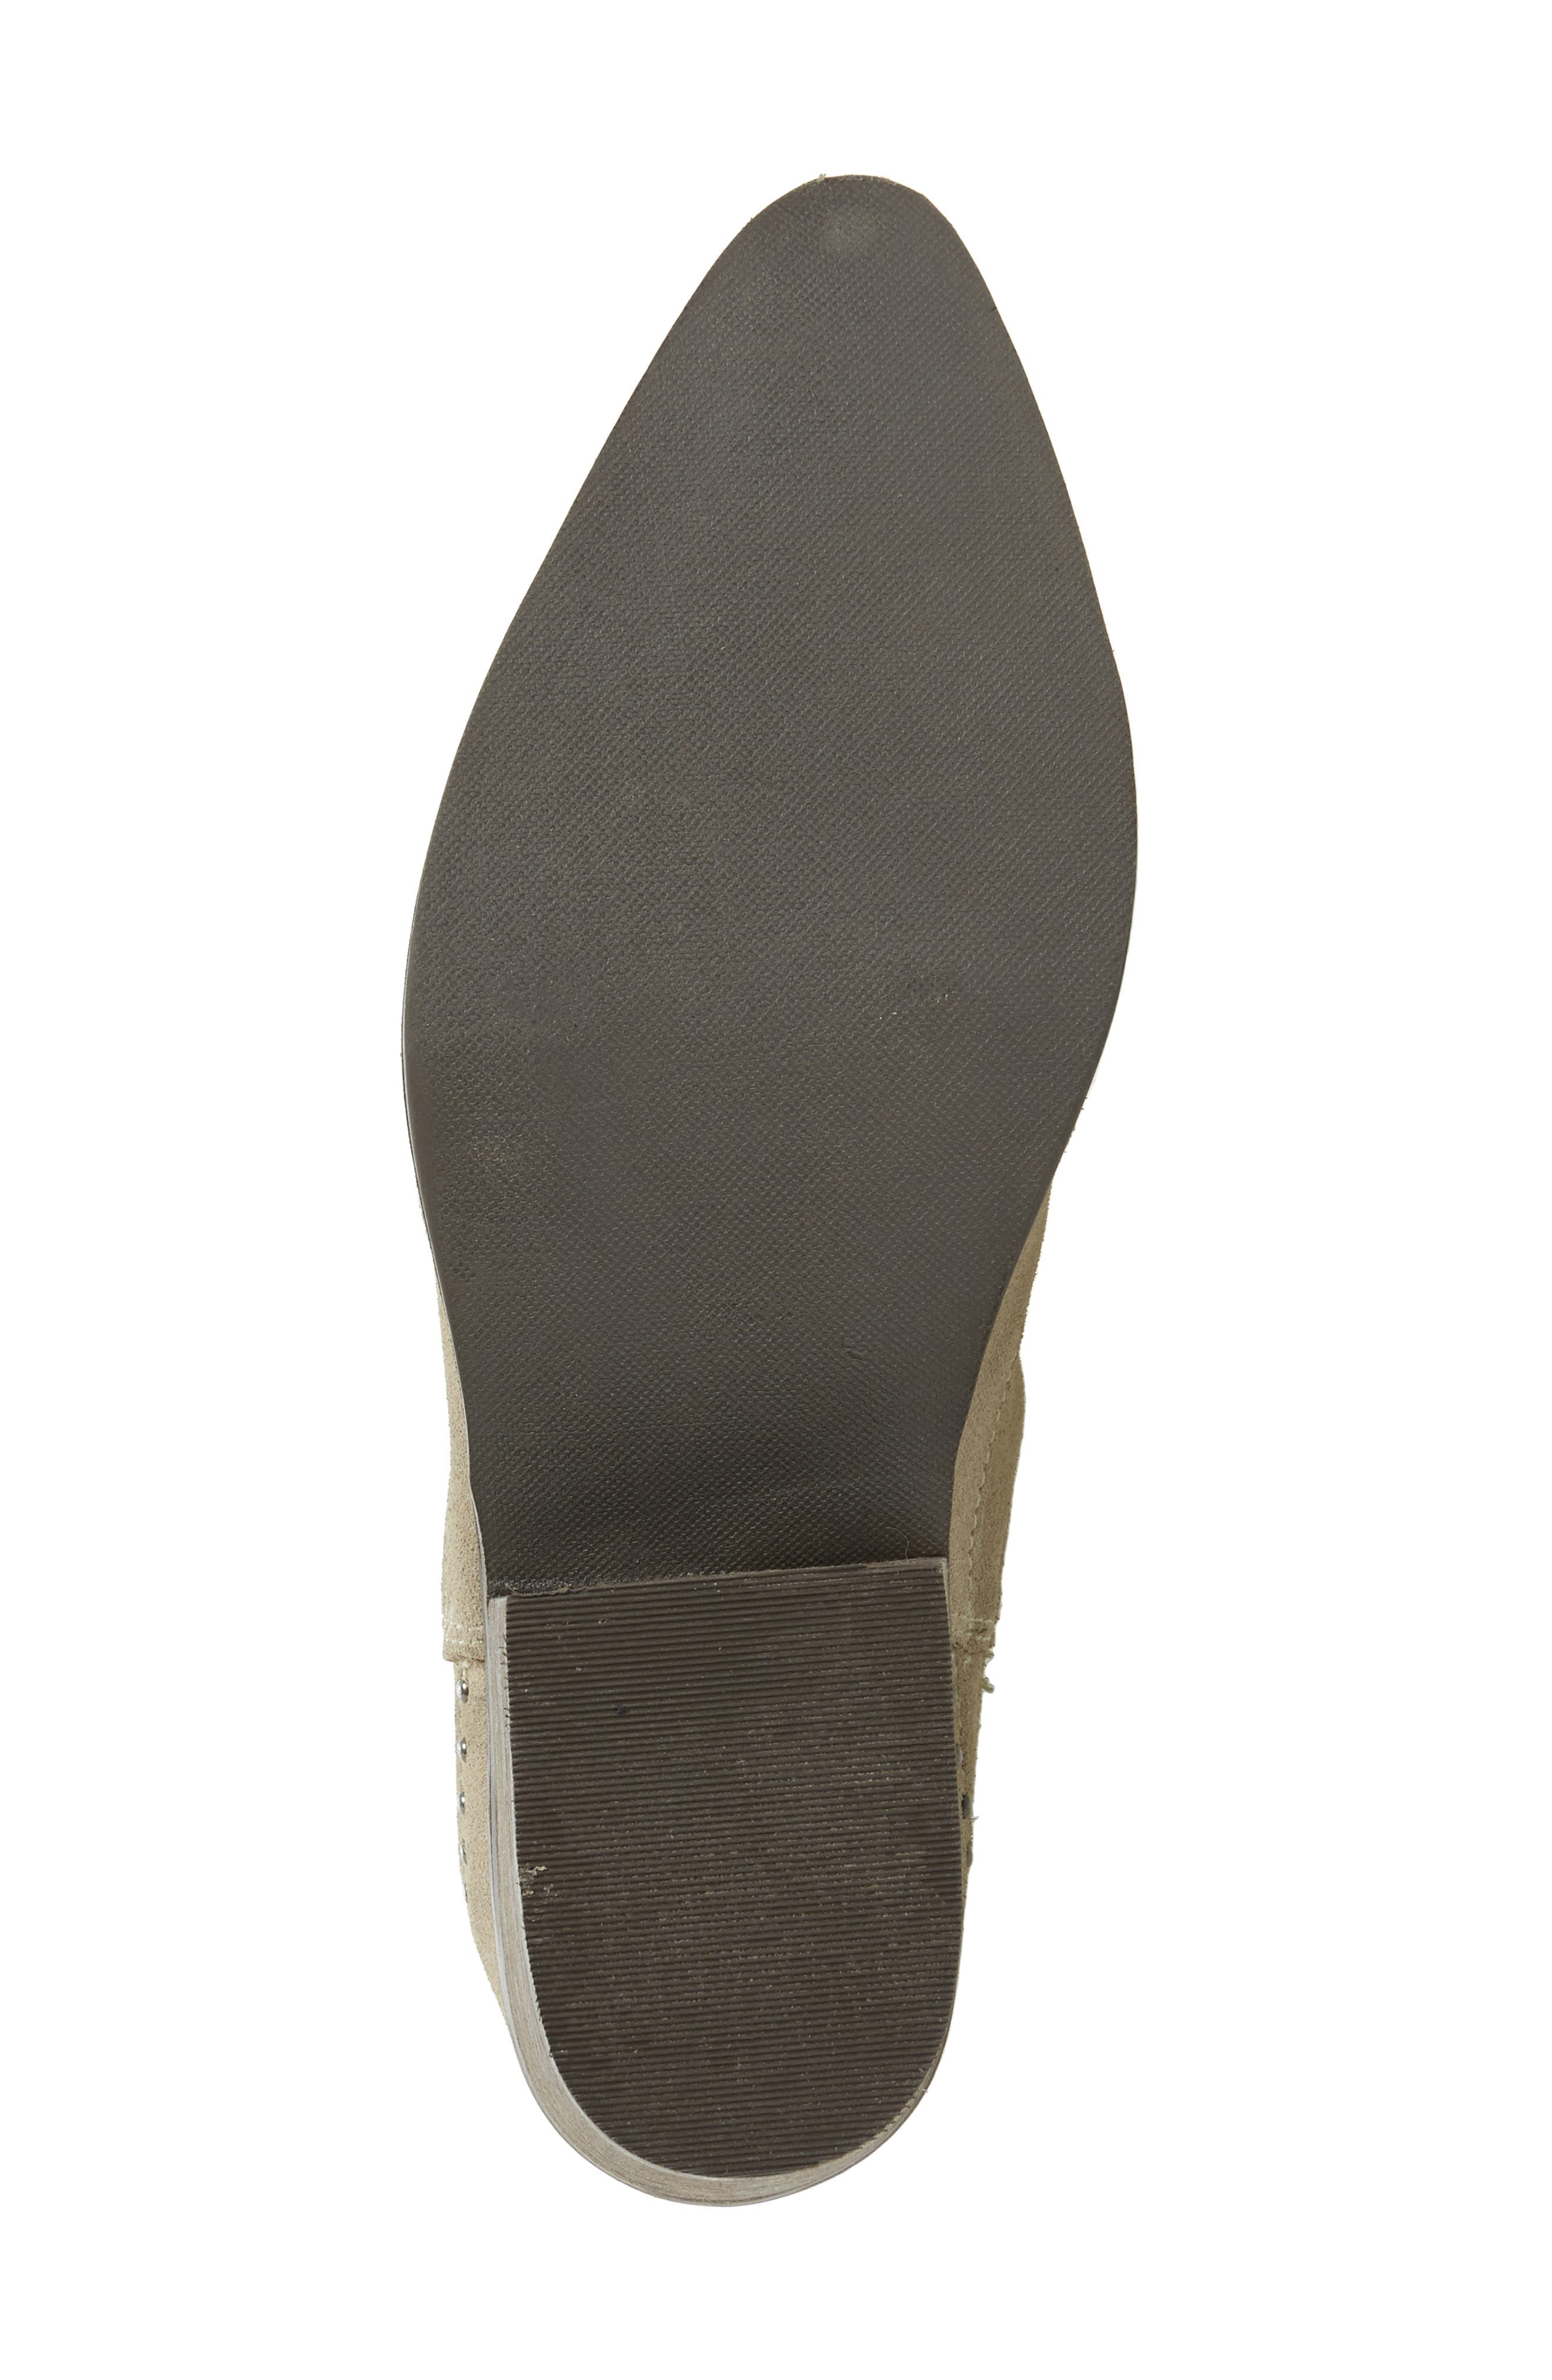 Backstage Bootie,                             Alternate thumbnail 4, color,                             Taupe Leather